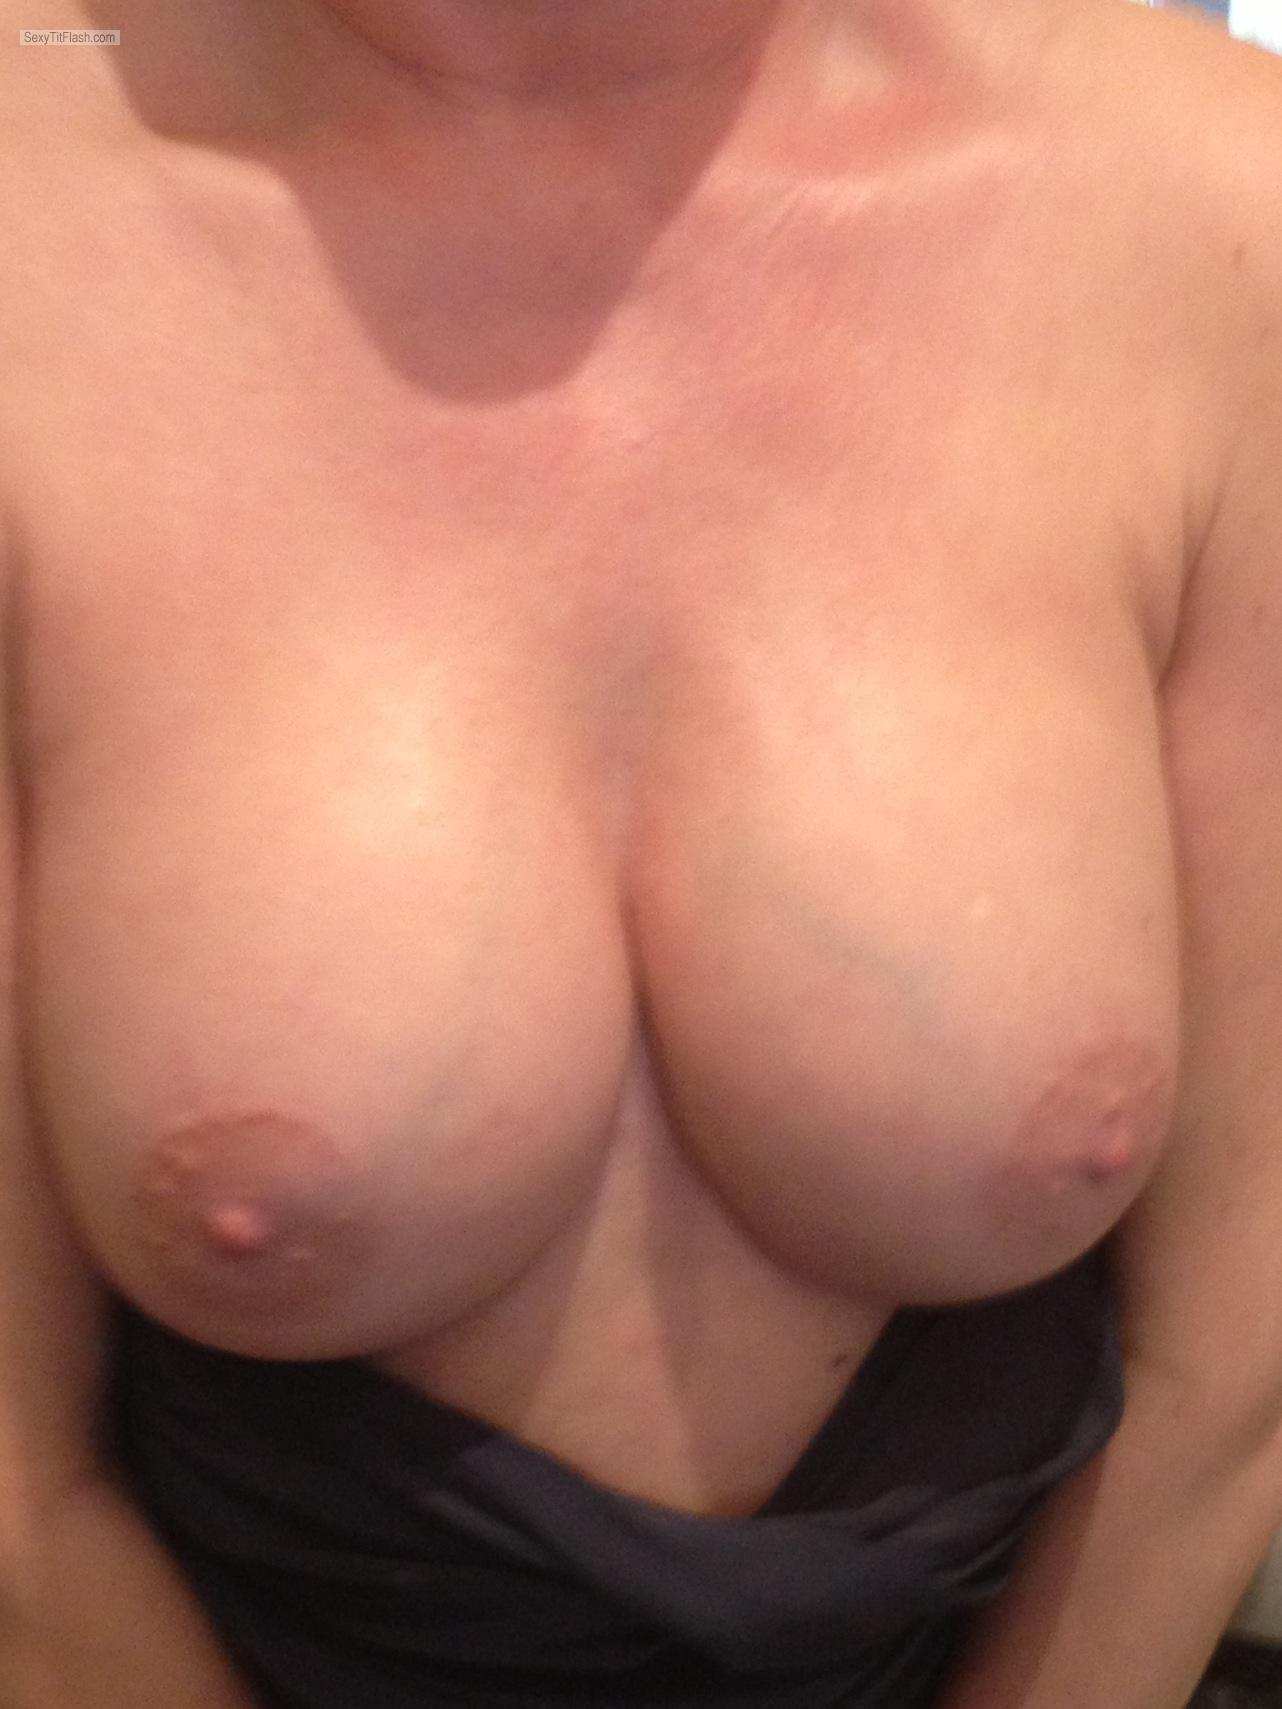 Tit Flash: My Medium Tits - Elizabeth from United Kingdom